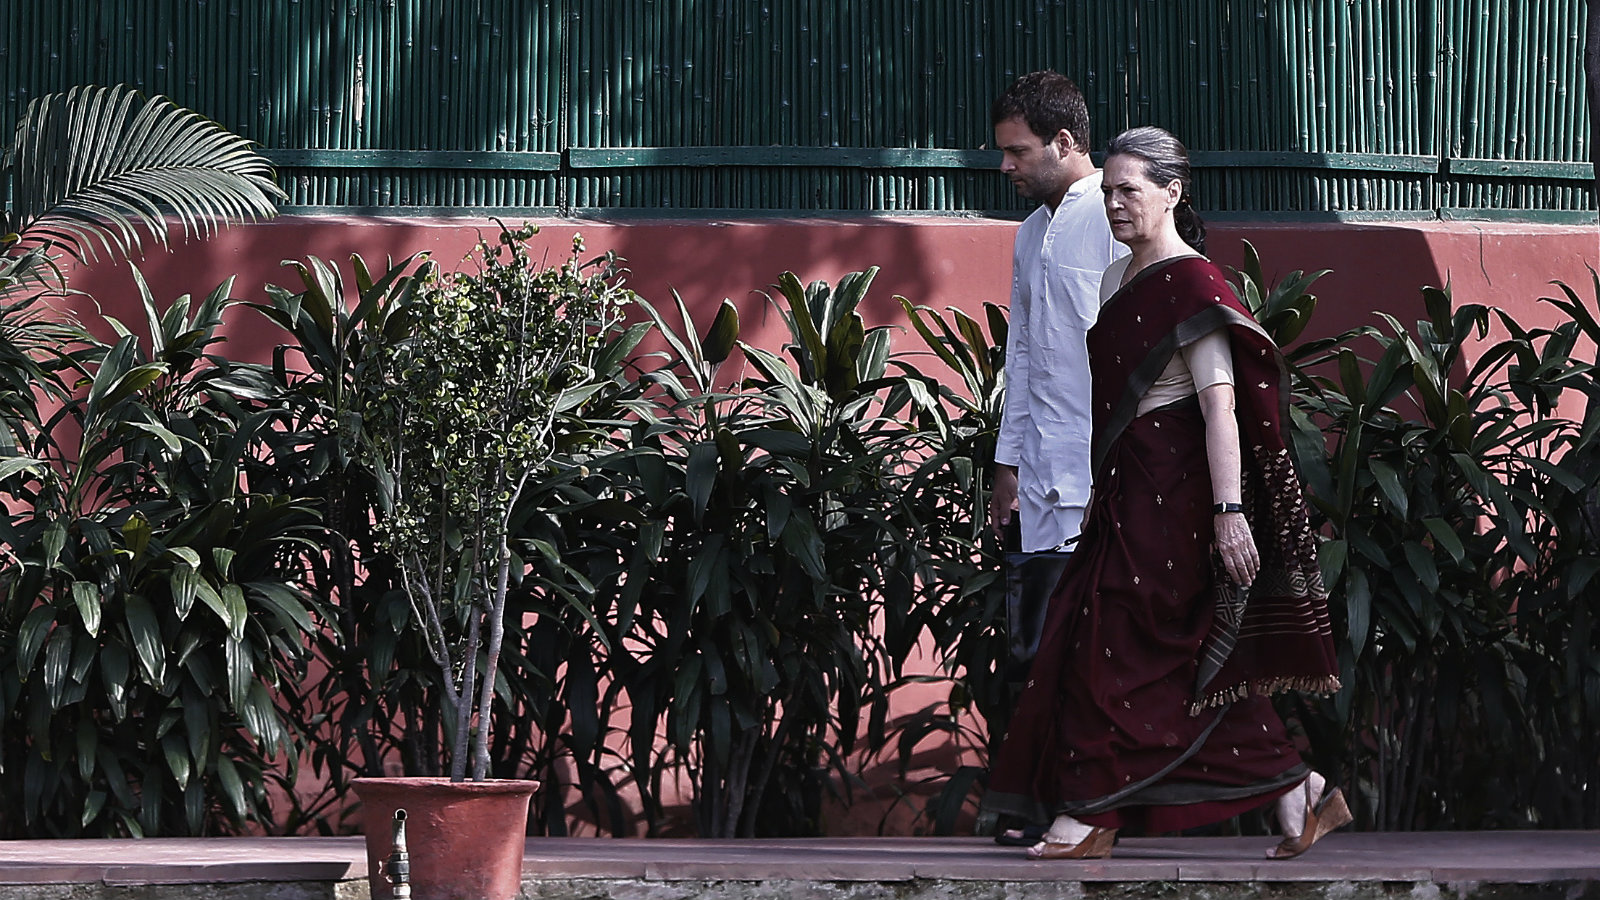 Congress party chief Sonia Gandhi and her son and party vice-president Rahul Gandhi in New Delhi.